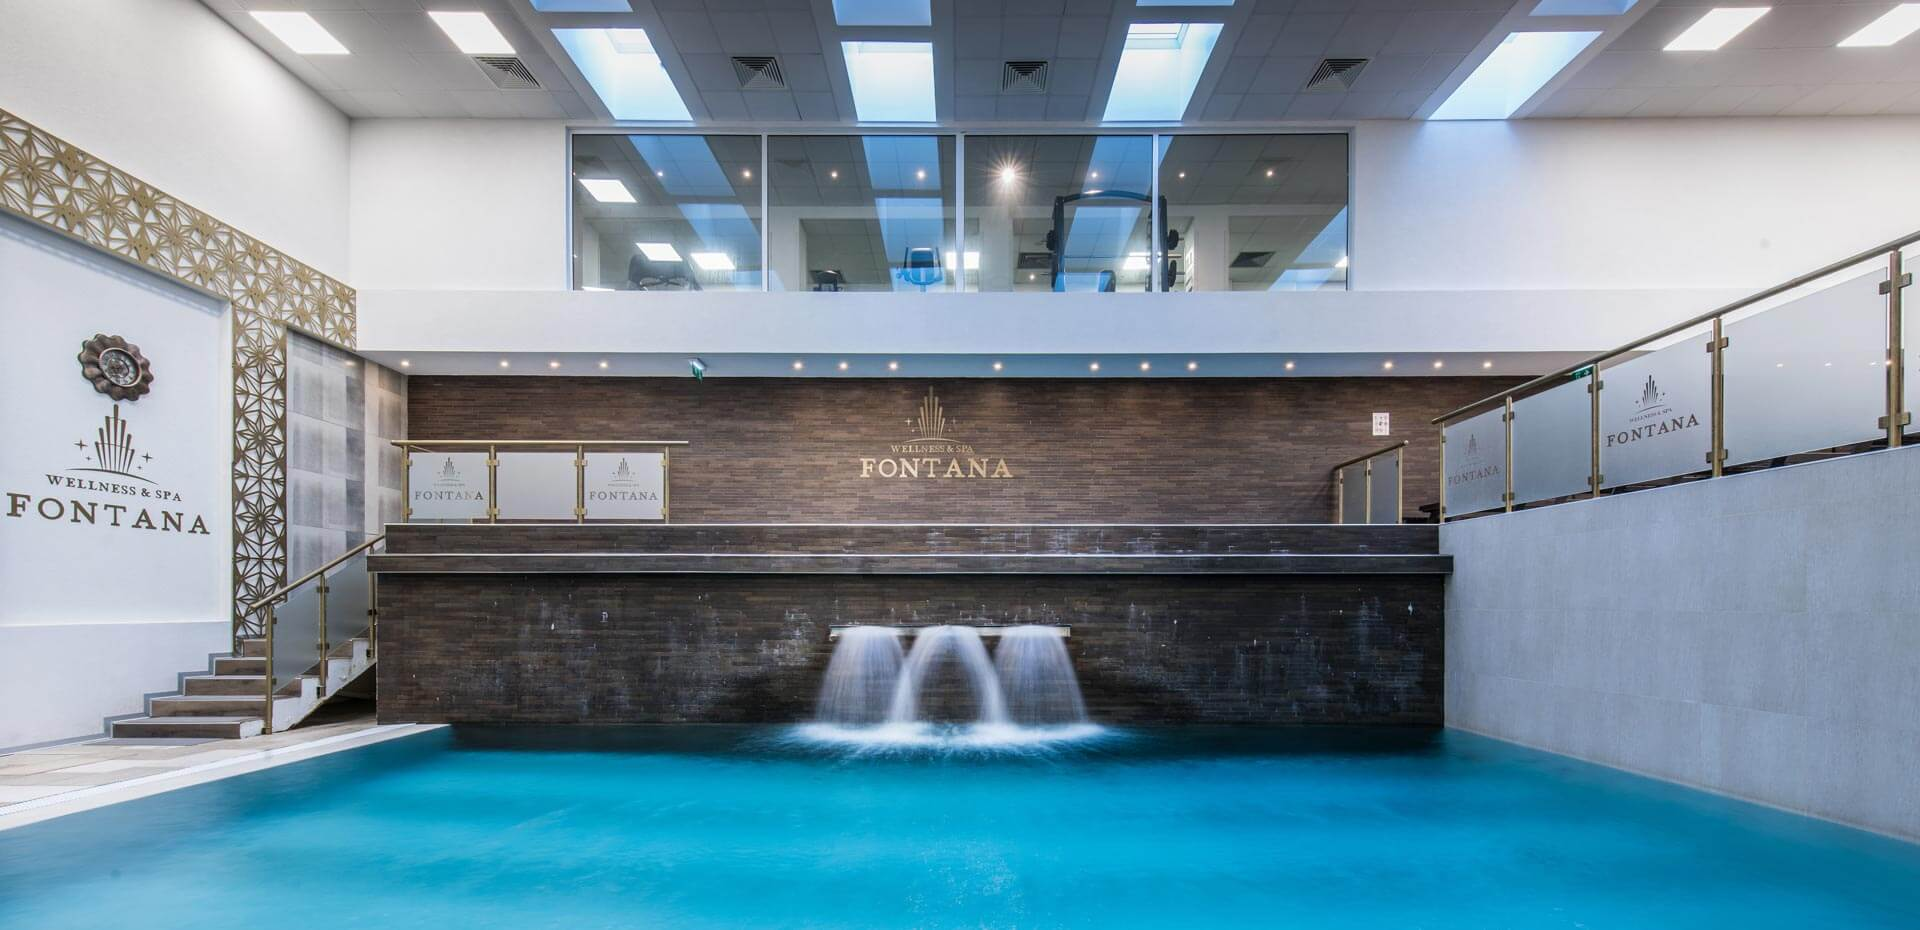 Fontana Wellness & Spa